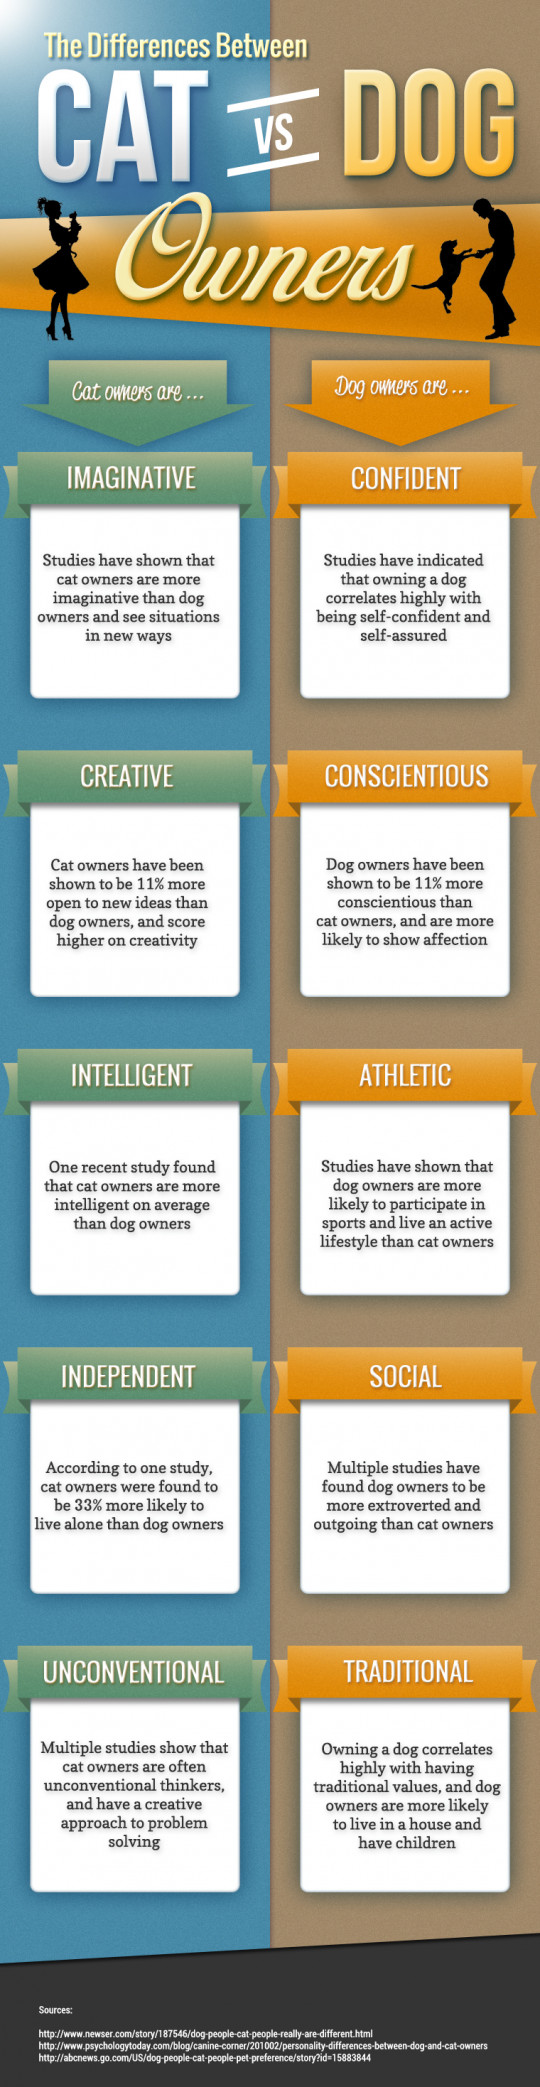 Differences Between Dog vs Cat Owners